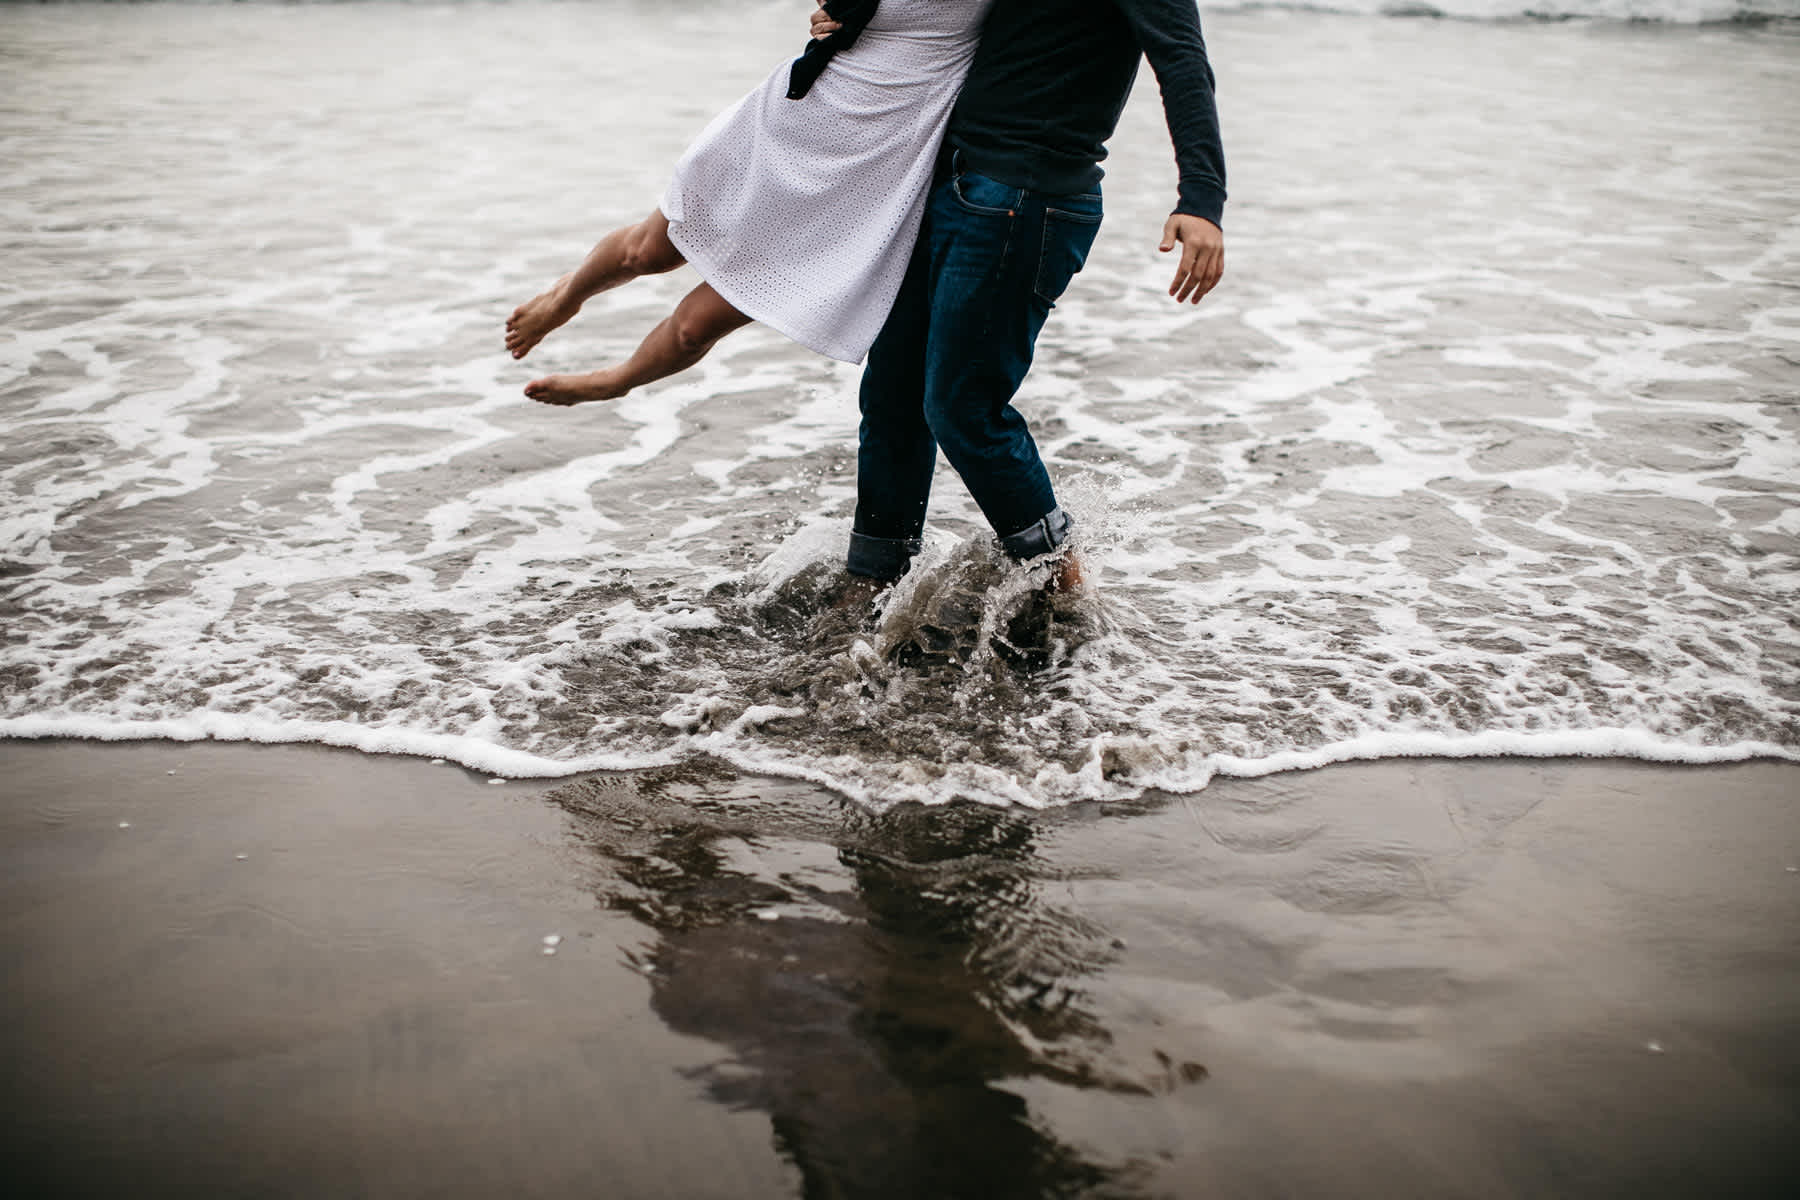 fort-funston-foggy-fun-beach-water-engagement-session-54